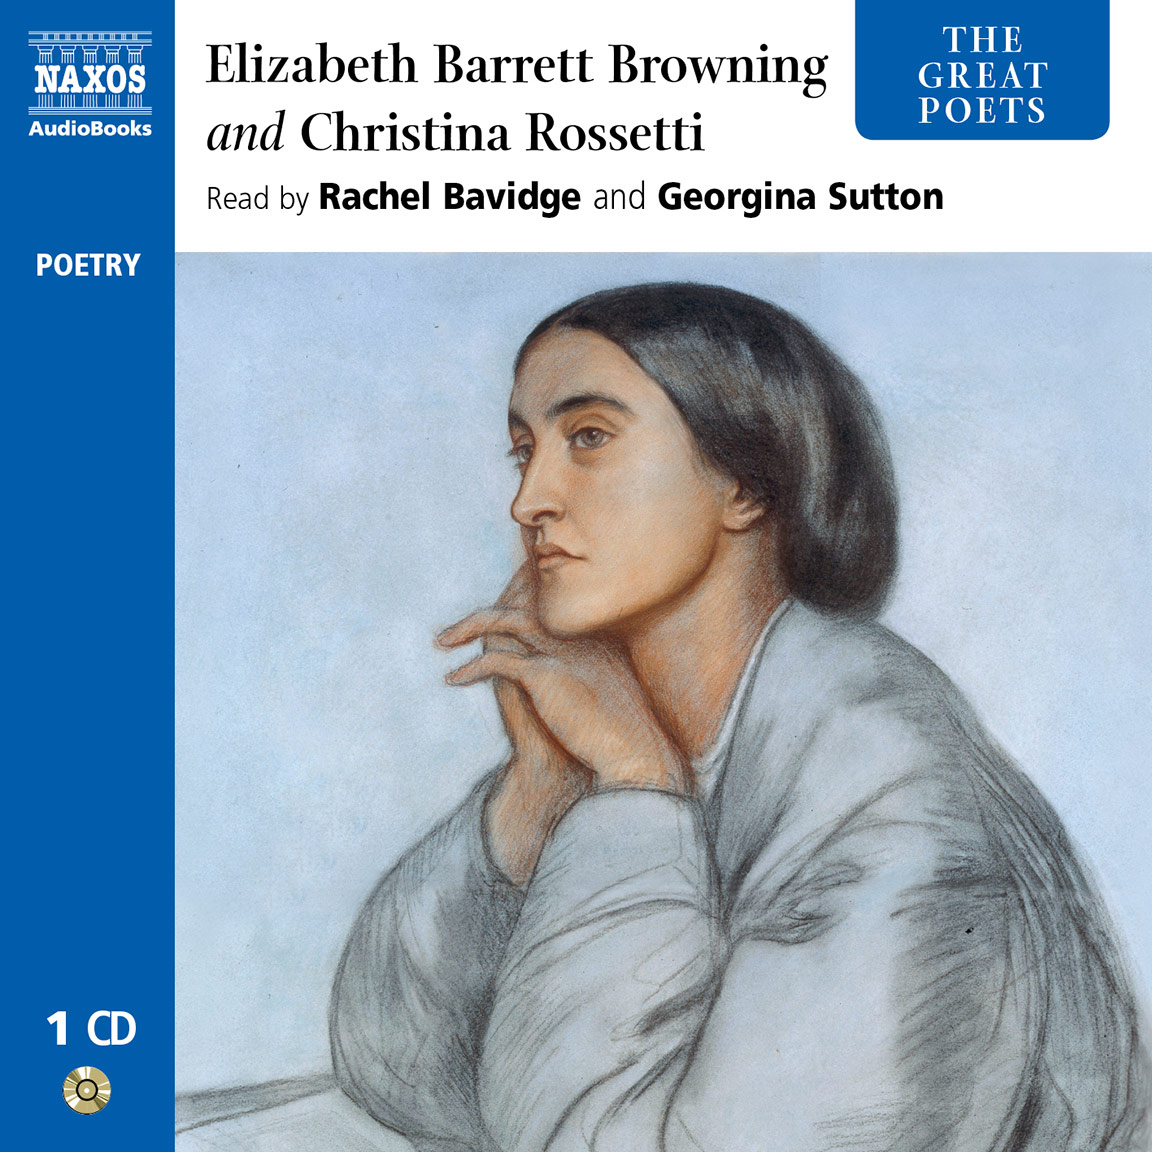 Elizabeth Barrett Browning and Christina Rossetti (selections)